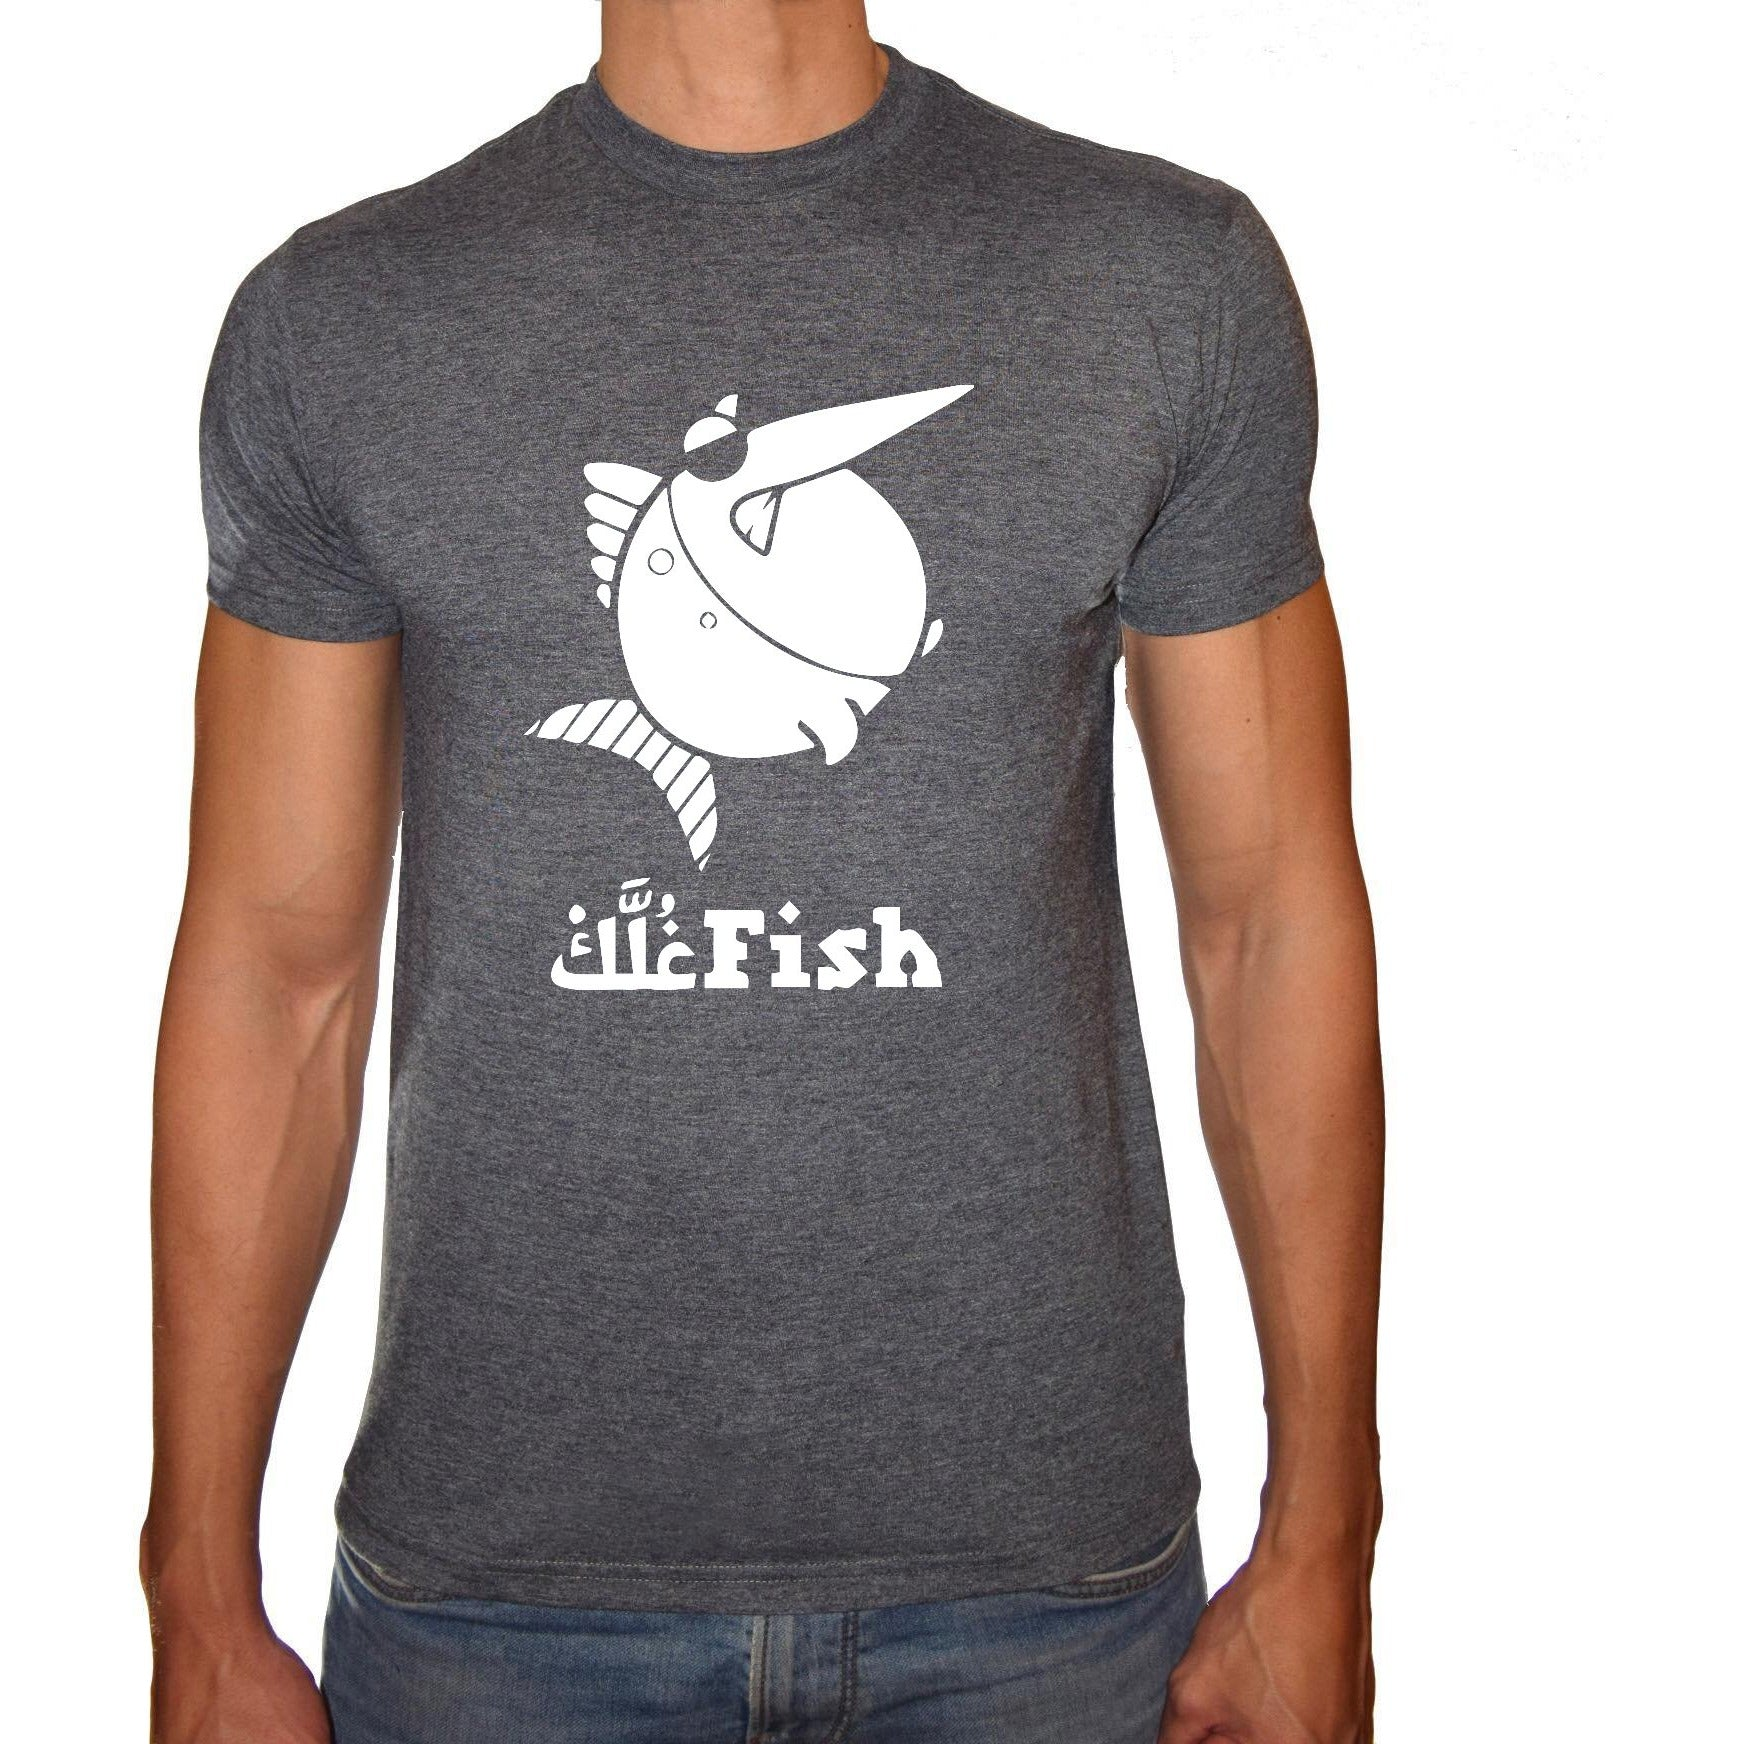 Phoenix CHARCOAL Round Neck Printed T-Shirt Men(fish 3elk)